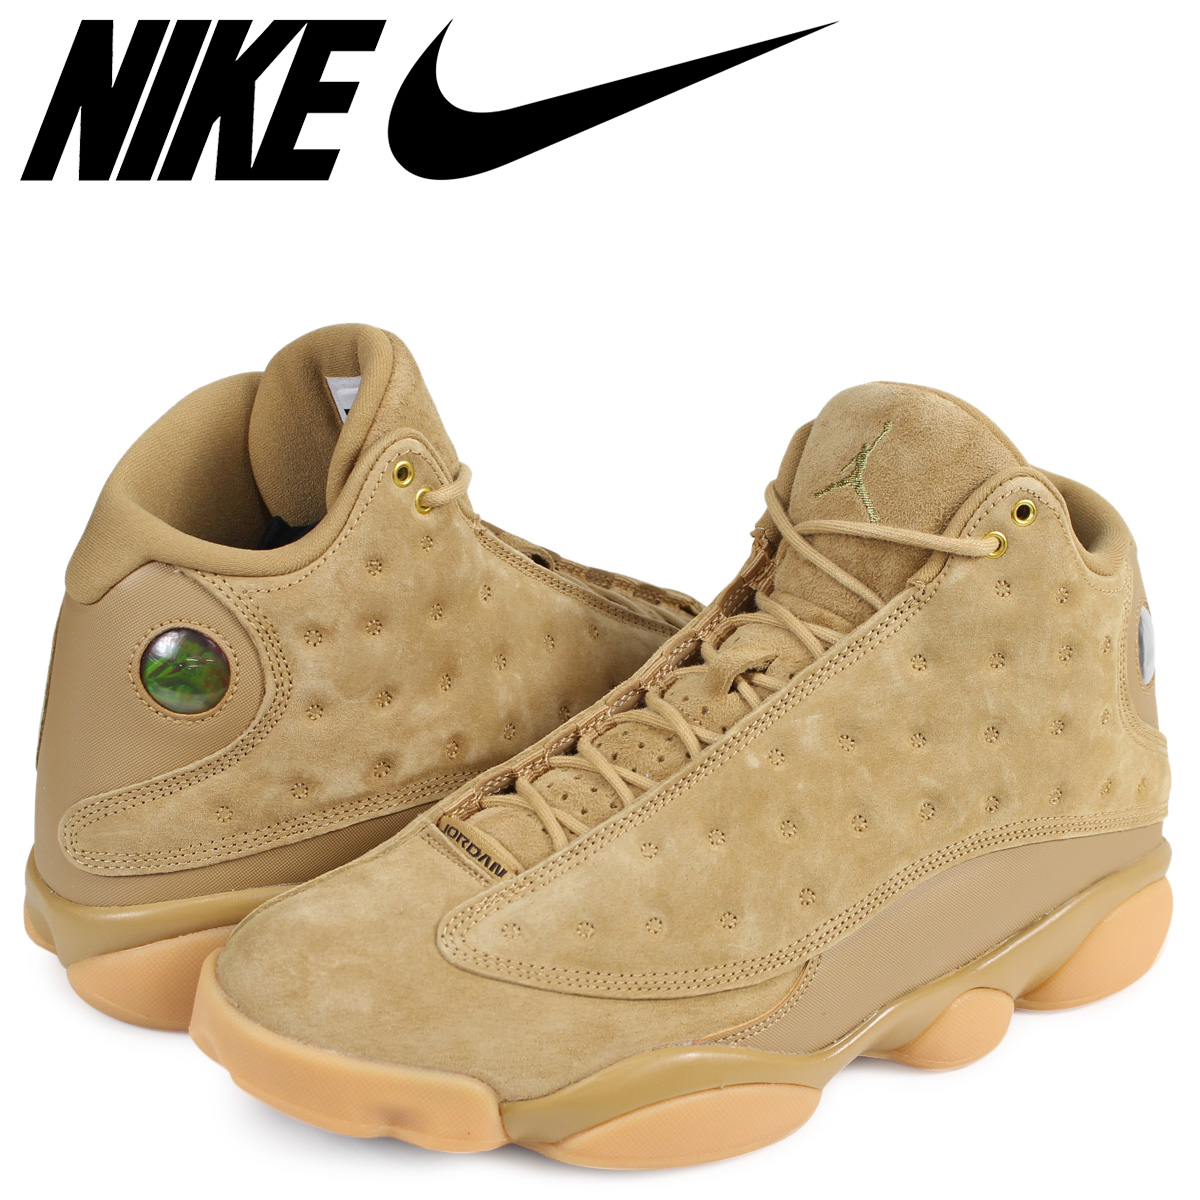 sports shoes 9a904 174d3 NIKE Nike Air Jordan 13 nostalgic sneakers AIR JORDAN 13 RETRO 414,571-705  men's beige